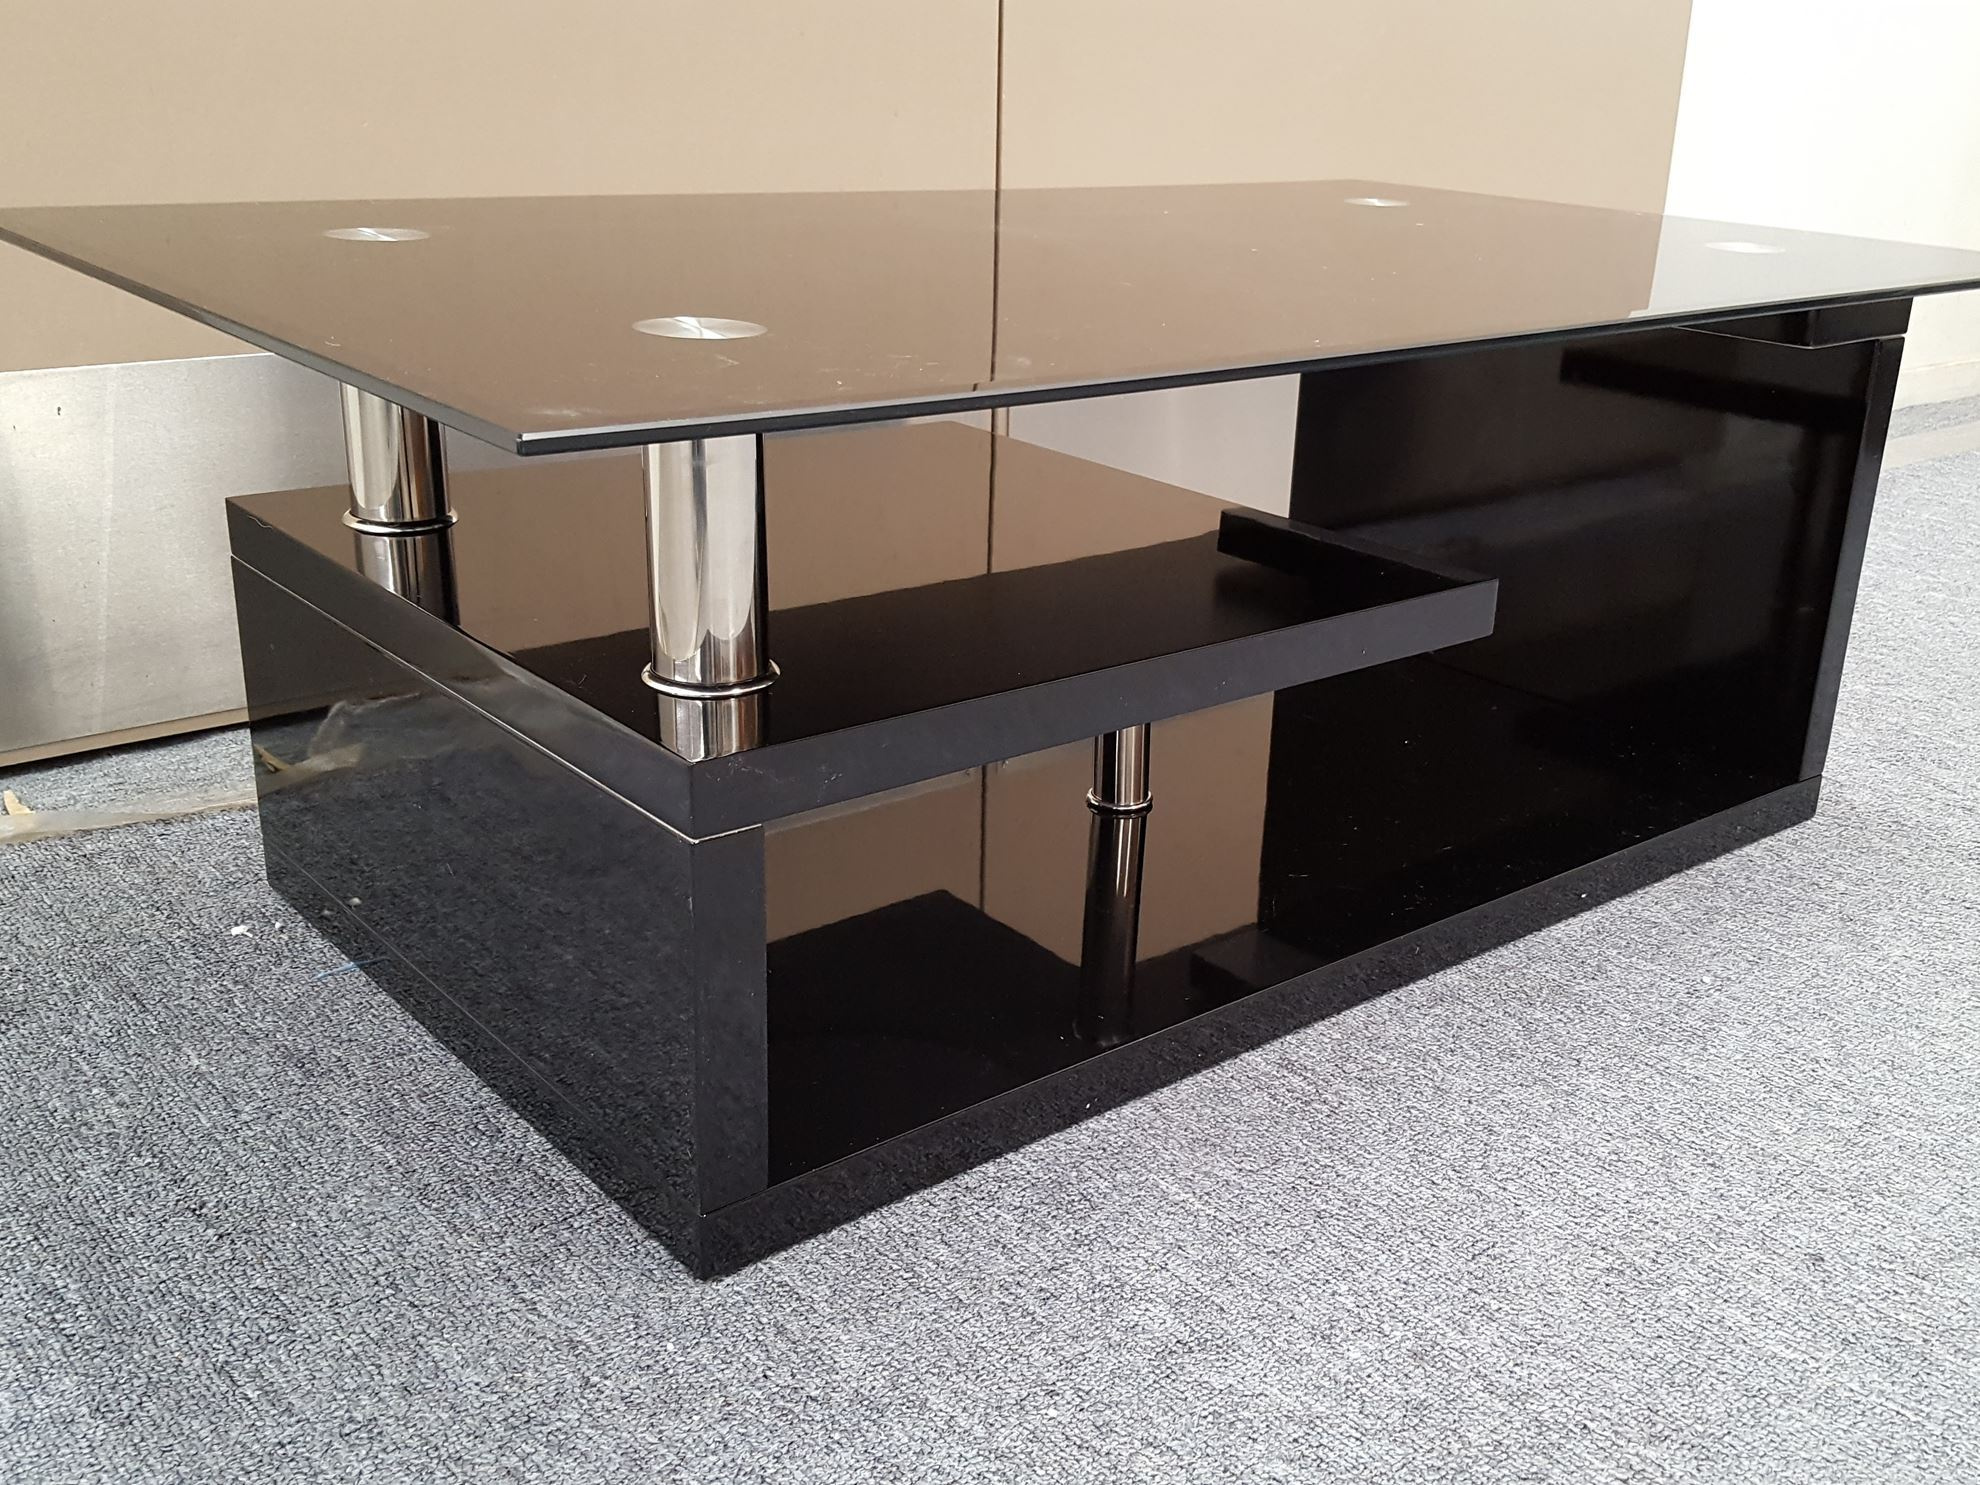 Furniture Place Vita Glass Coffee Table with Black Tempered Glass